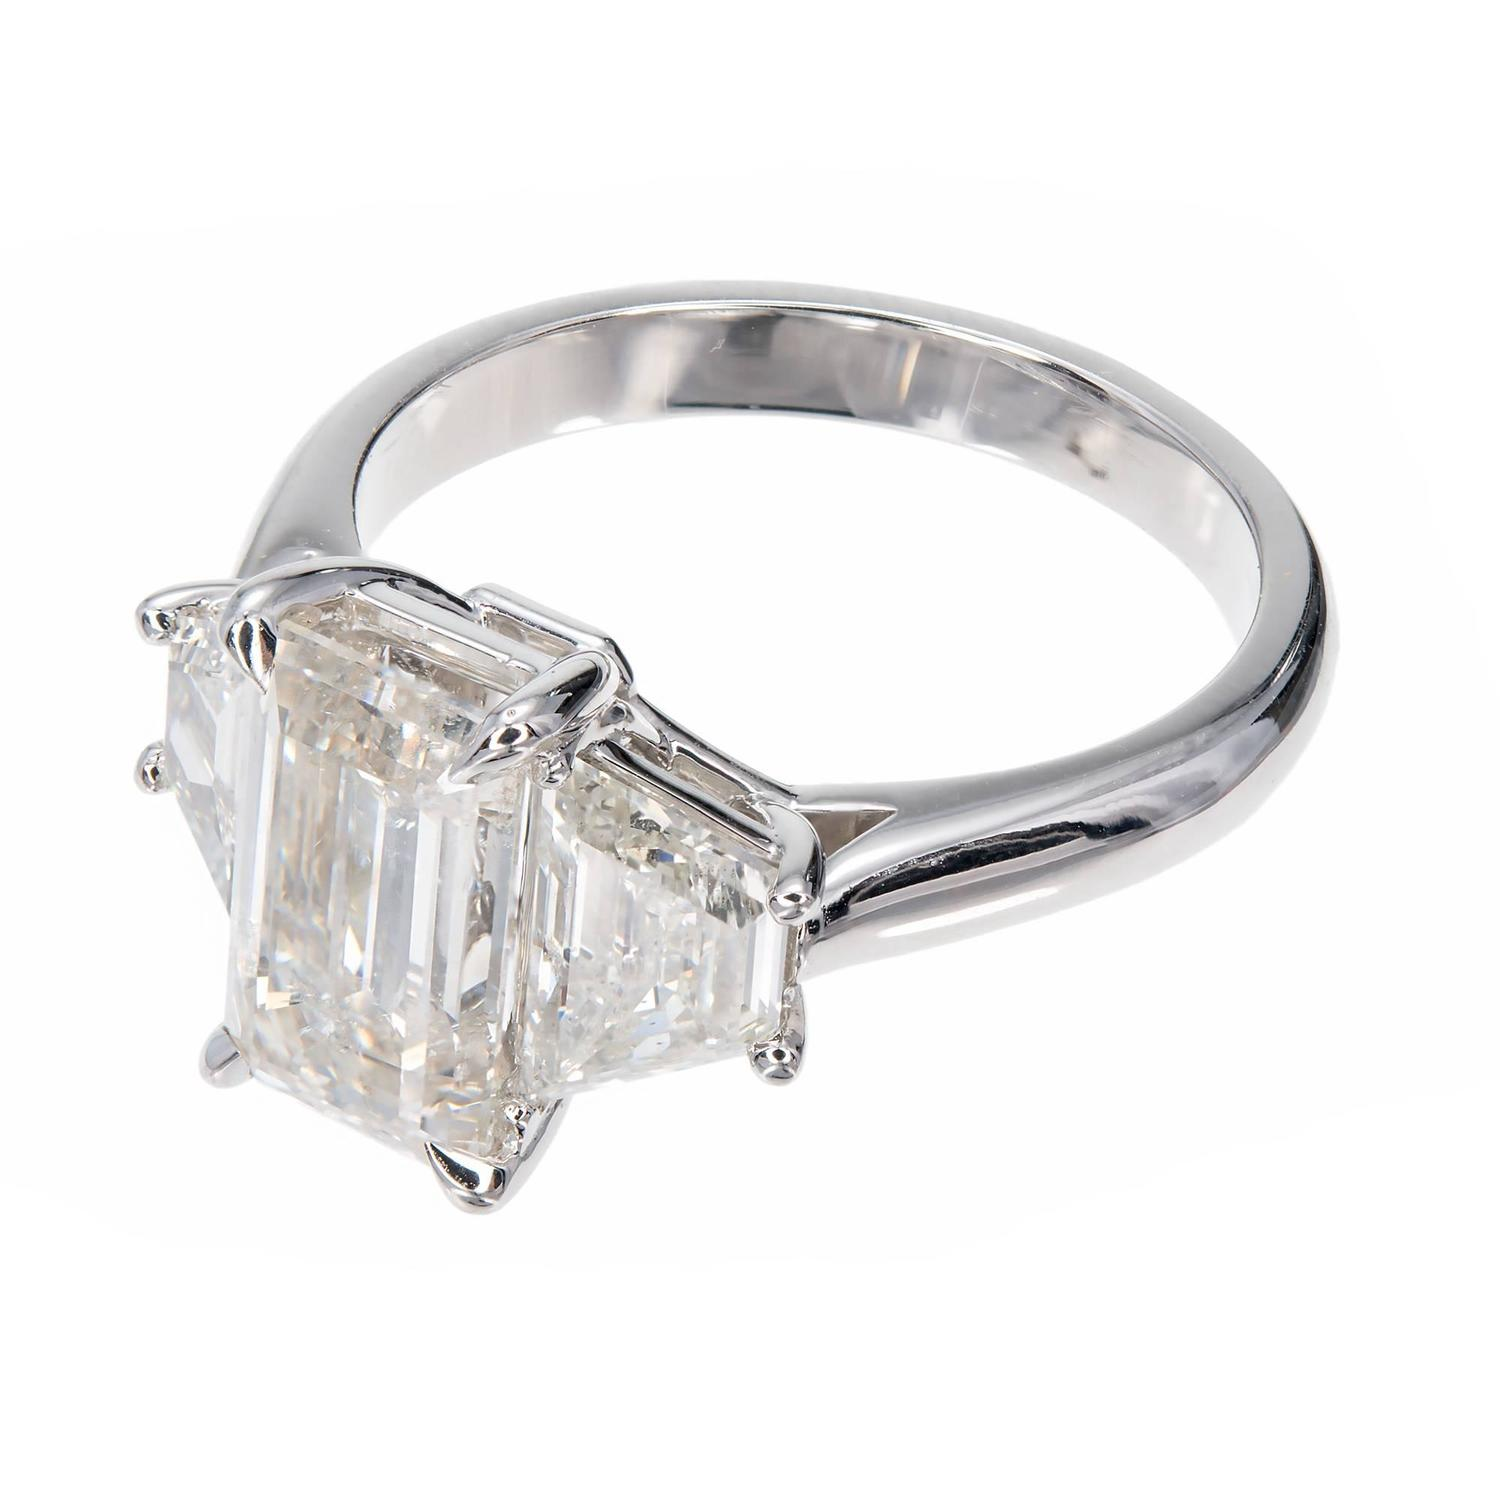 Peter Suchy Emerald Cut Diamond Platinum Three Stone Engagement Ring For Sale